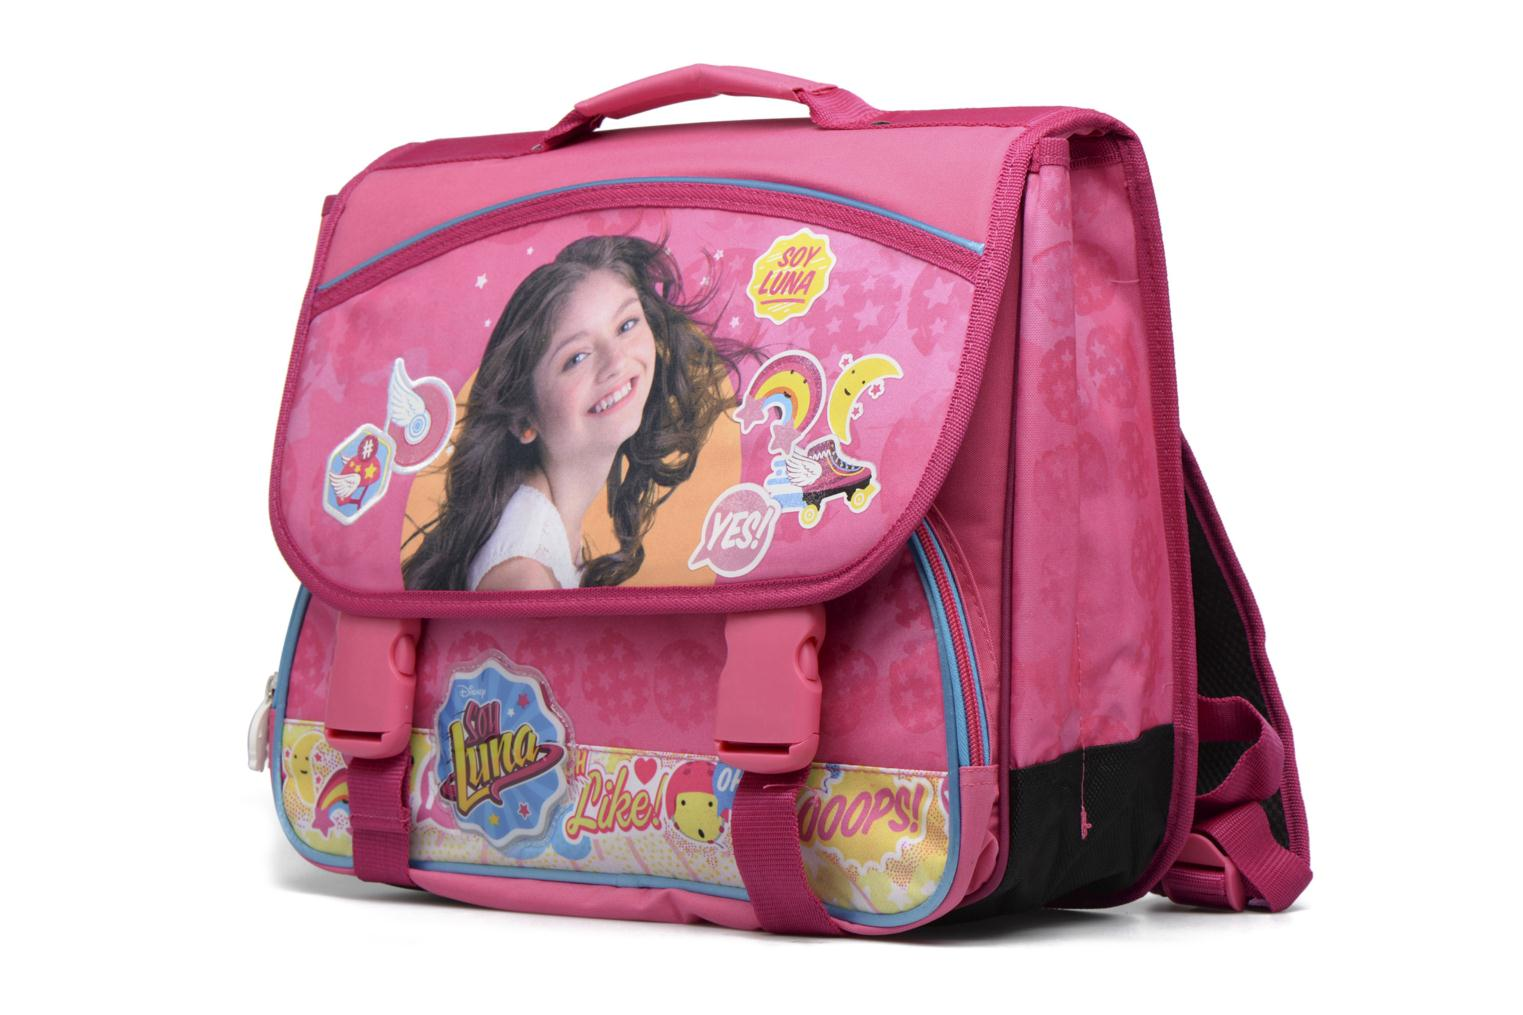 School bags Soy Luna Cartable 38cm Pink model view